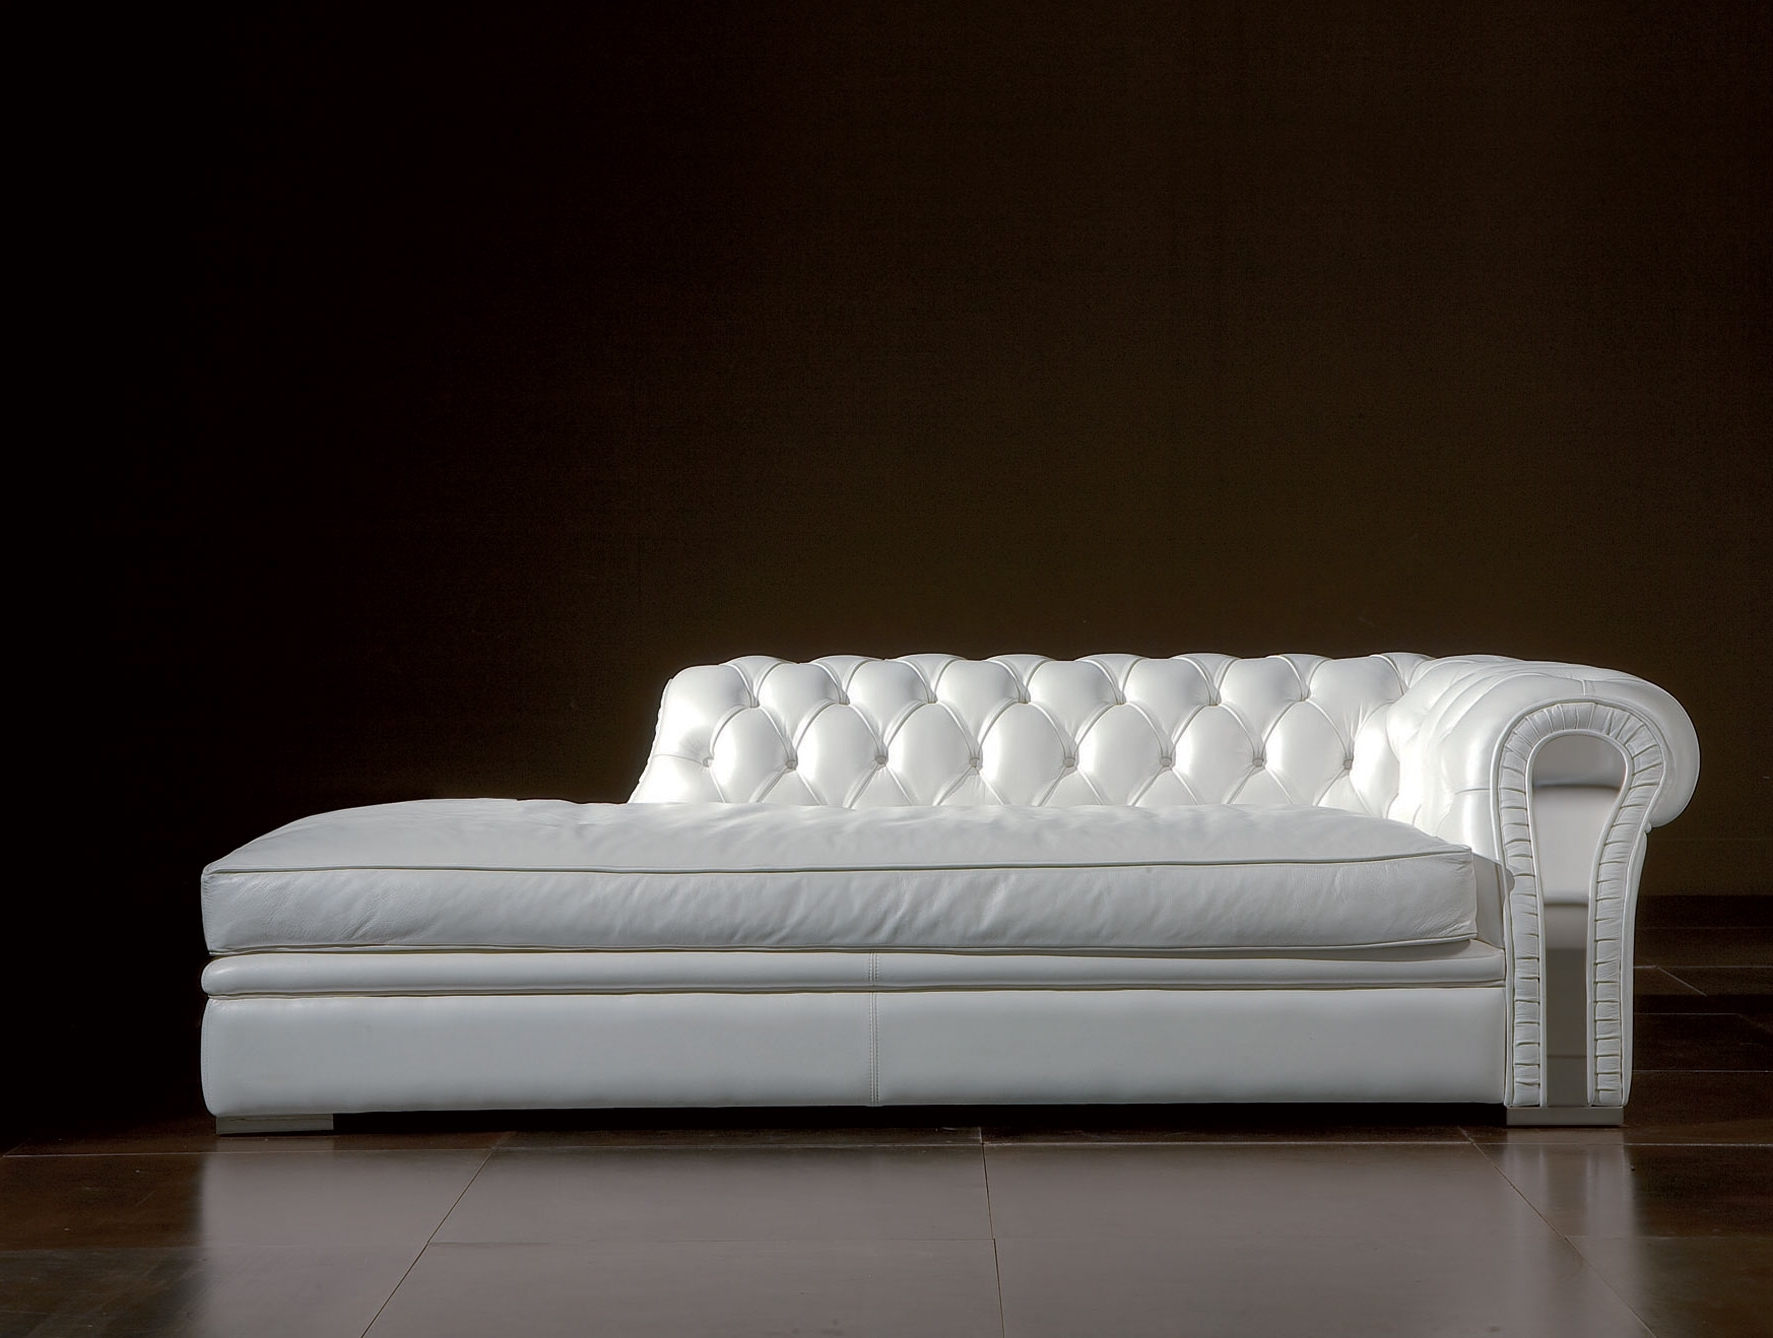 Long White Leather Sofa Chaise Lounge With Puffed Headboard Placed Regarding Popular White Leather Chaises (View 8 of 15)